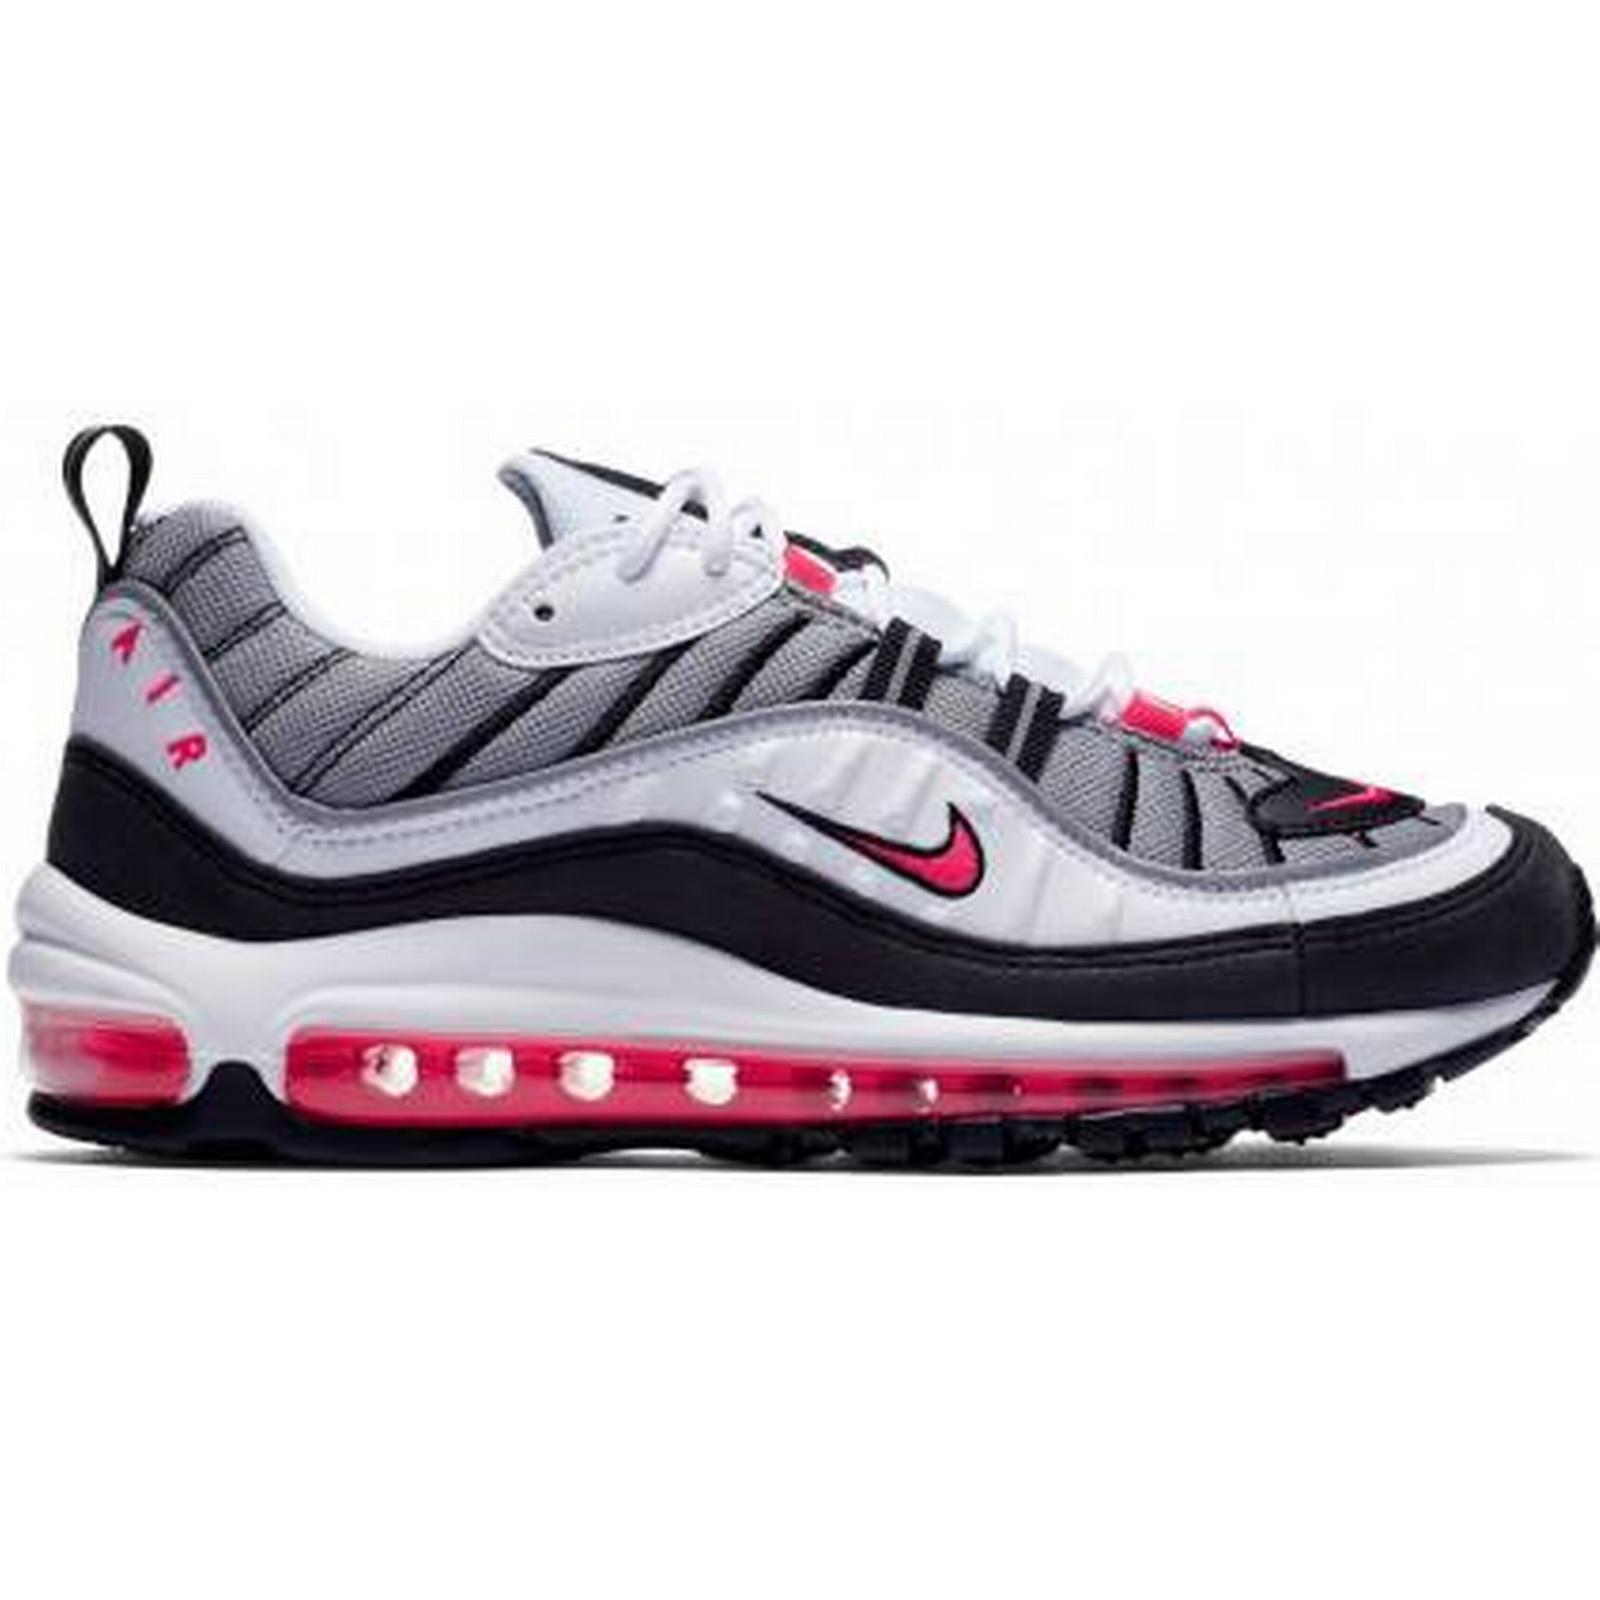 Nike WMNS Air Max 98 Silver) (White / Red / Silver) 98 266b99